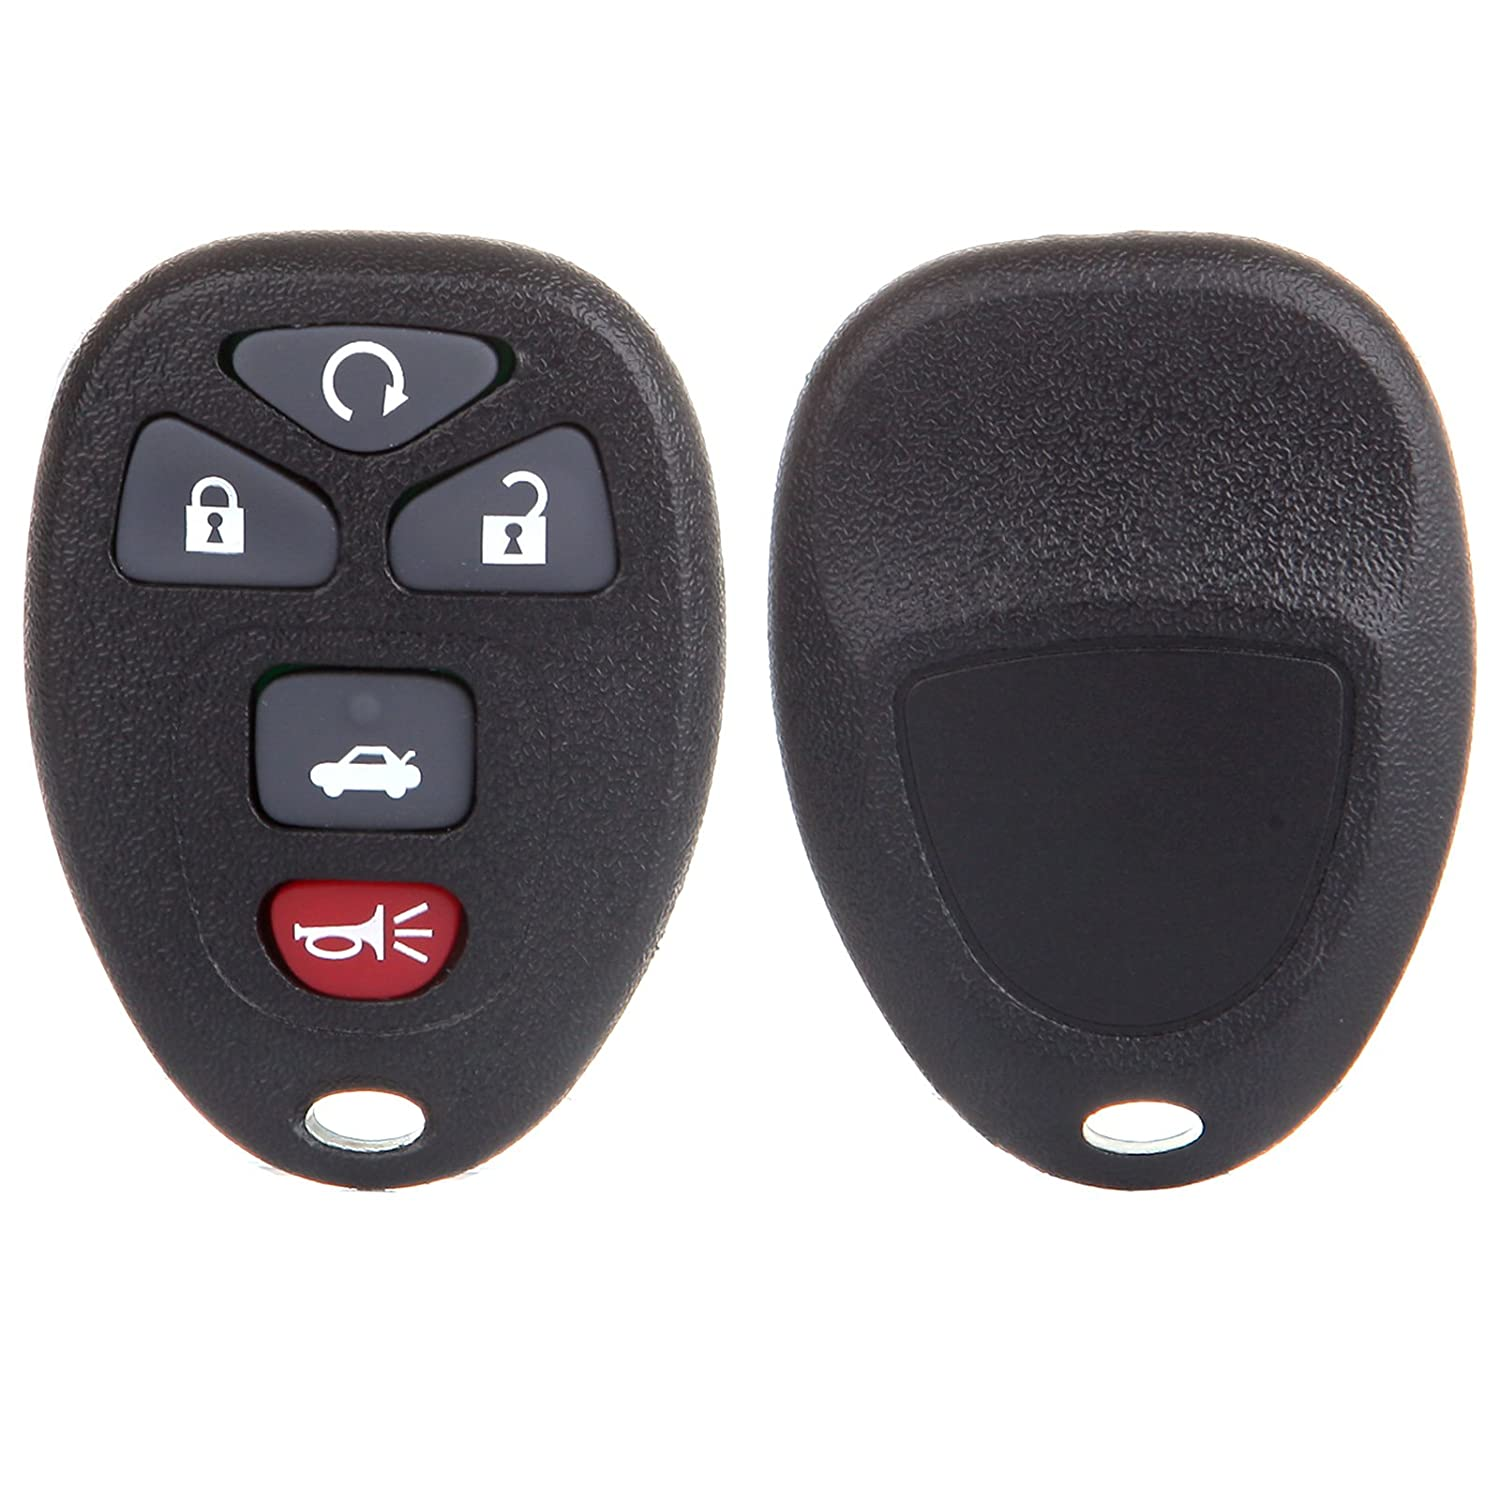 SCITOO Replacement fit for 2PCS Keyless Entry Remote Fob Chevy Saturn Buick Pontiac Series KOBGT04A